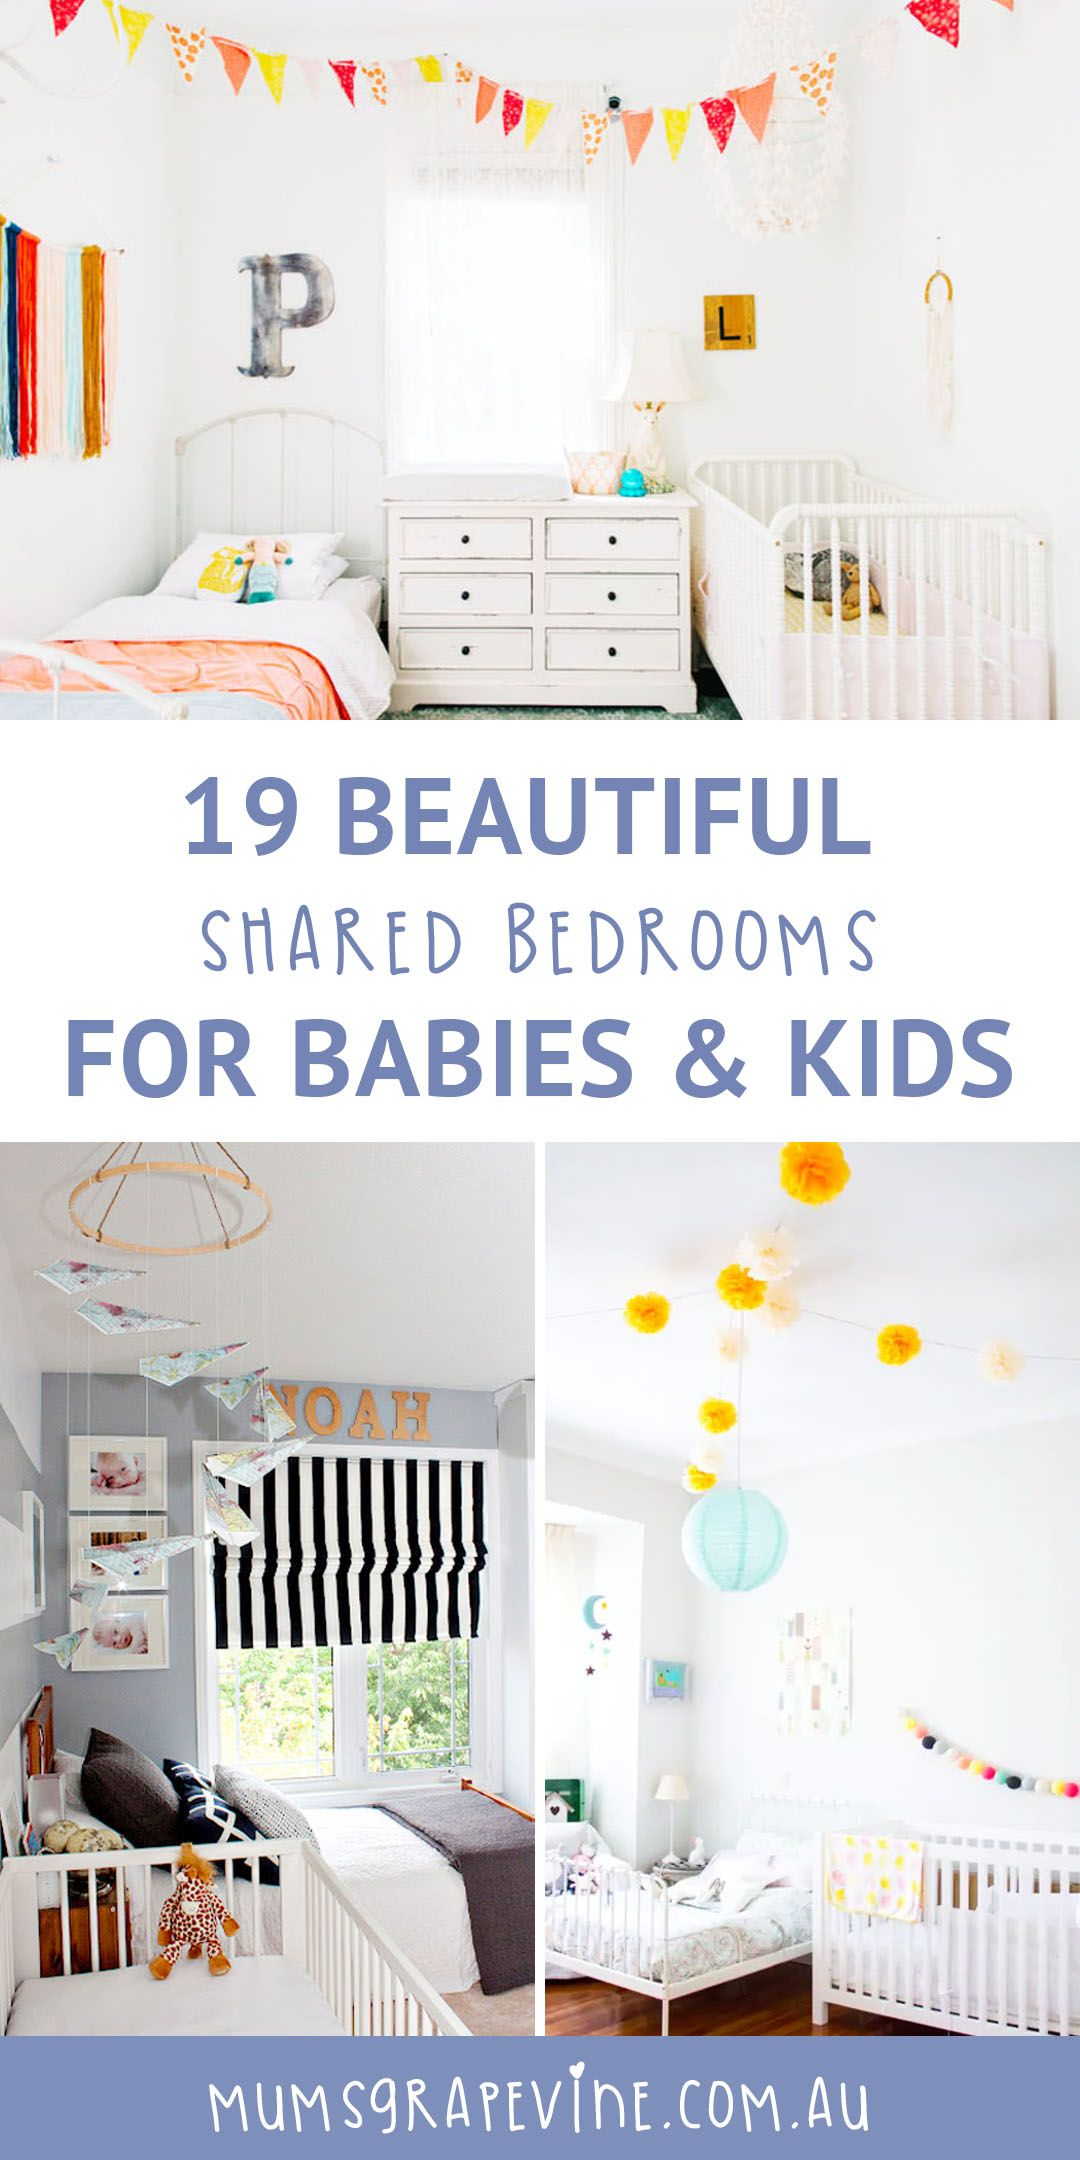 19 beautiful shared bedrooms for babies and kids From nautical boys rooms to safari style nurseries we look at organising kids rooms and turning them into beautiful shared bedrooms  sharedbedrooms n is part of Kids rooms shared -